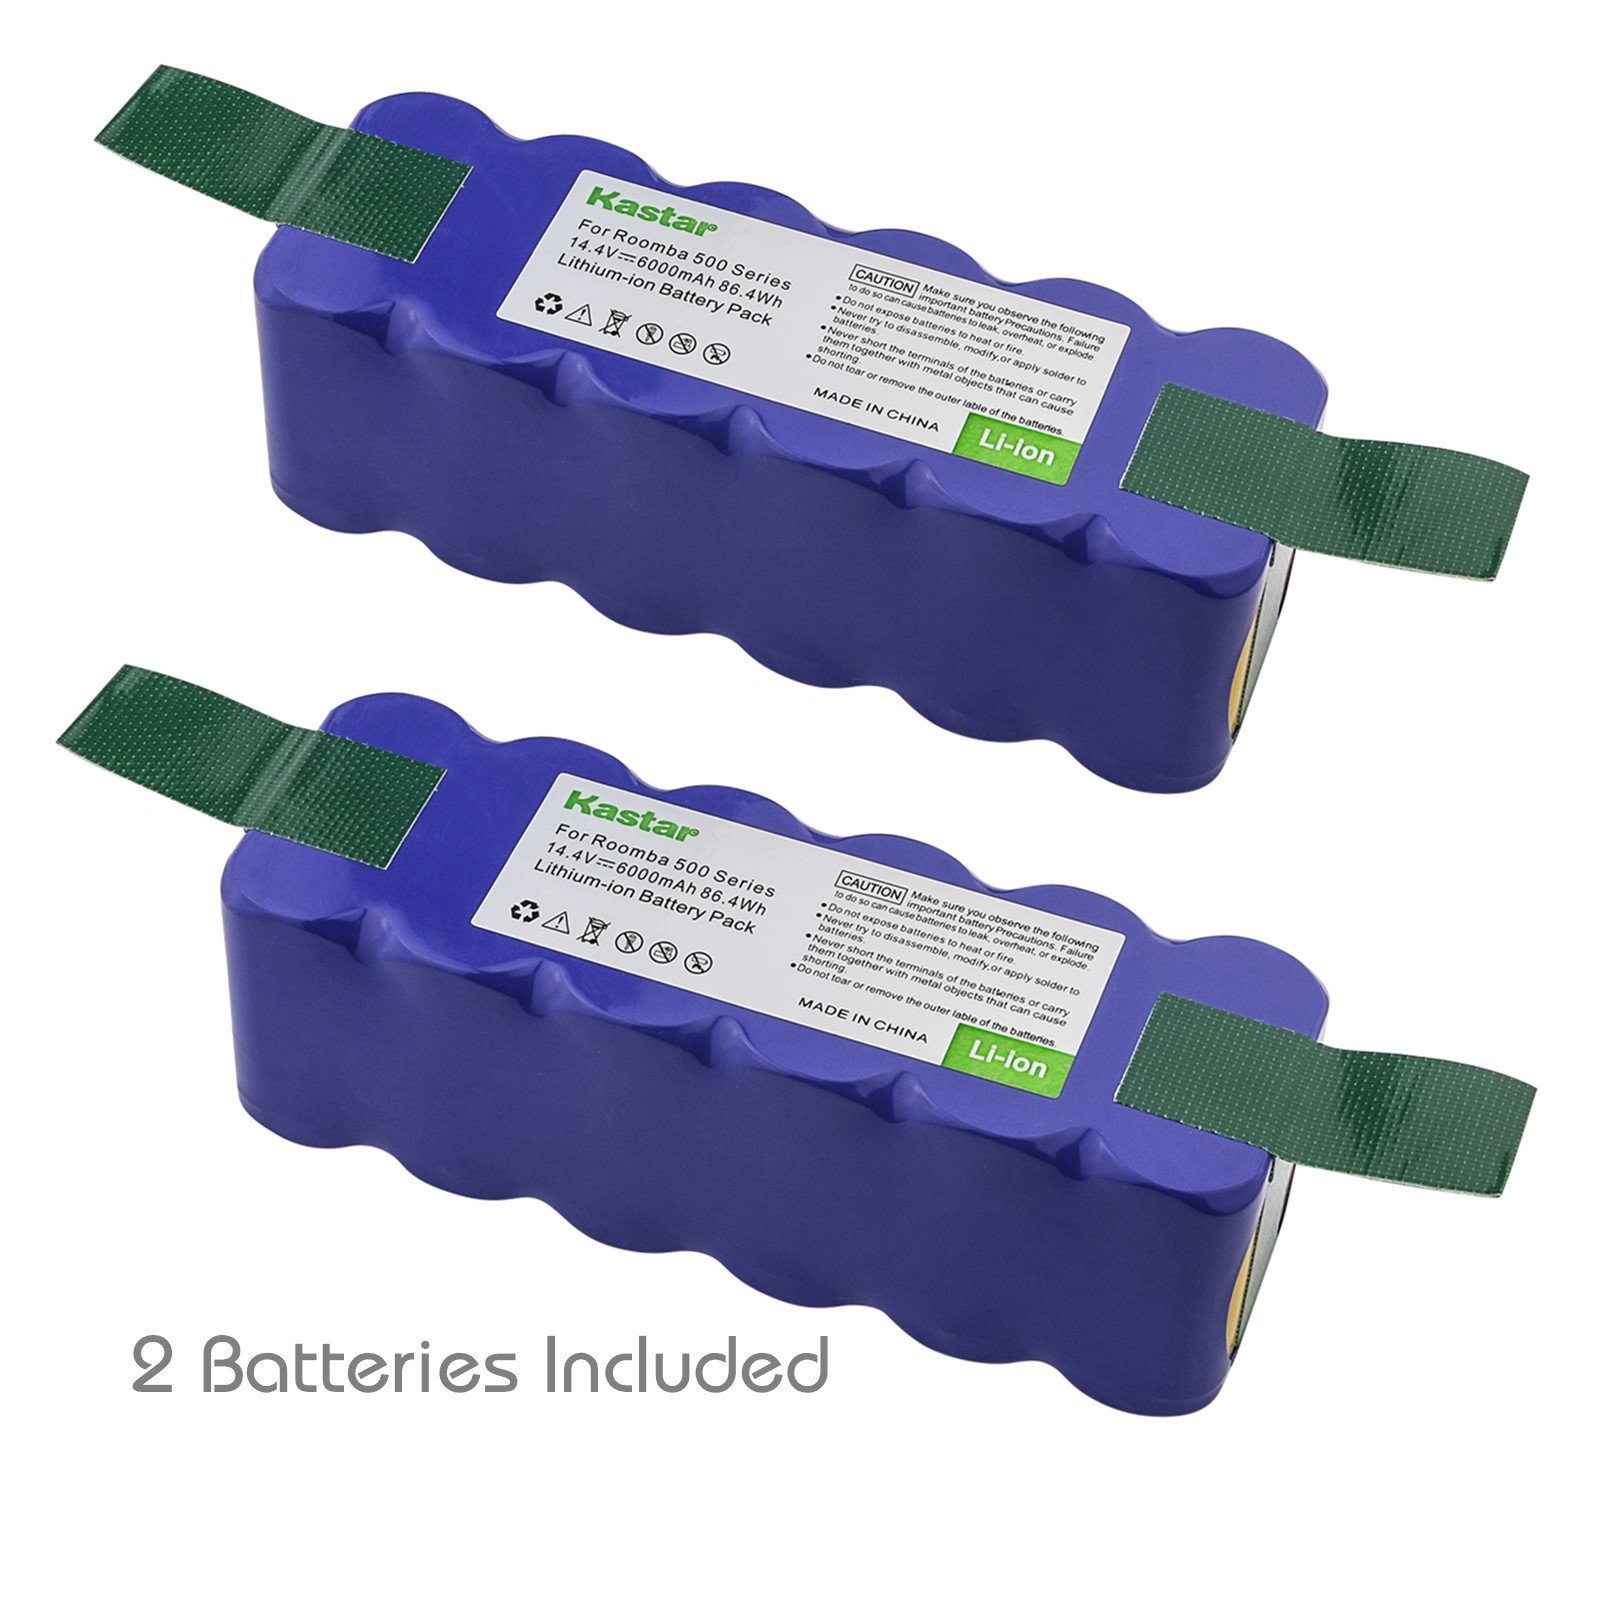 Kastar Lithium-ion Replacement Battery 14.4V 6000mAh 2 Pack for iRobot Roomba R3 500, 600, 700, 800 & 900 series 510 530 531 532 540 550 570 580 585 610 620 650 660 760 770 780 790 870 880 R3 4419696